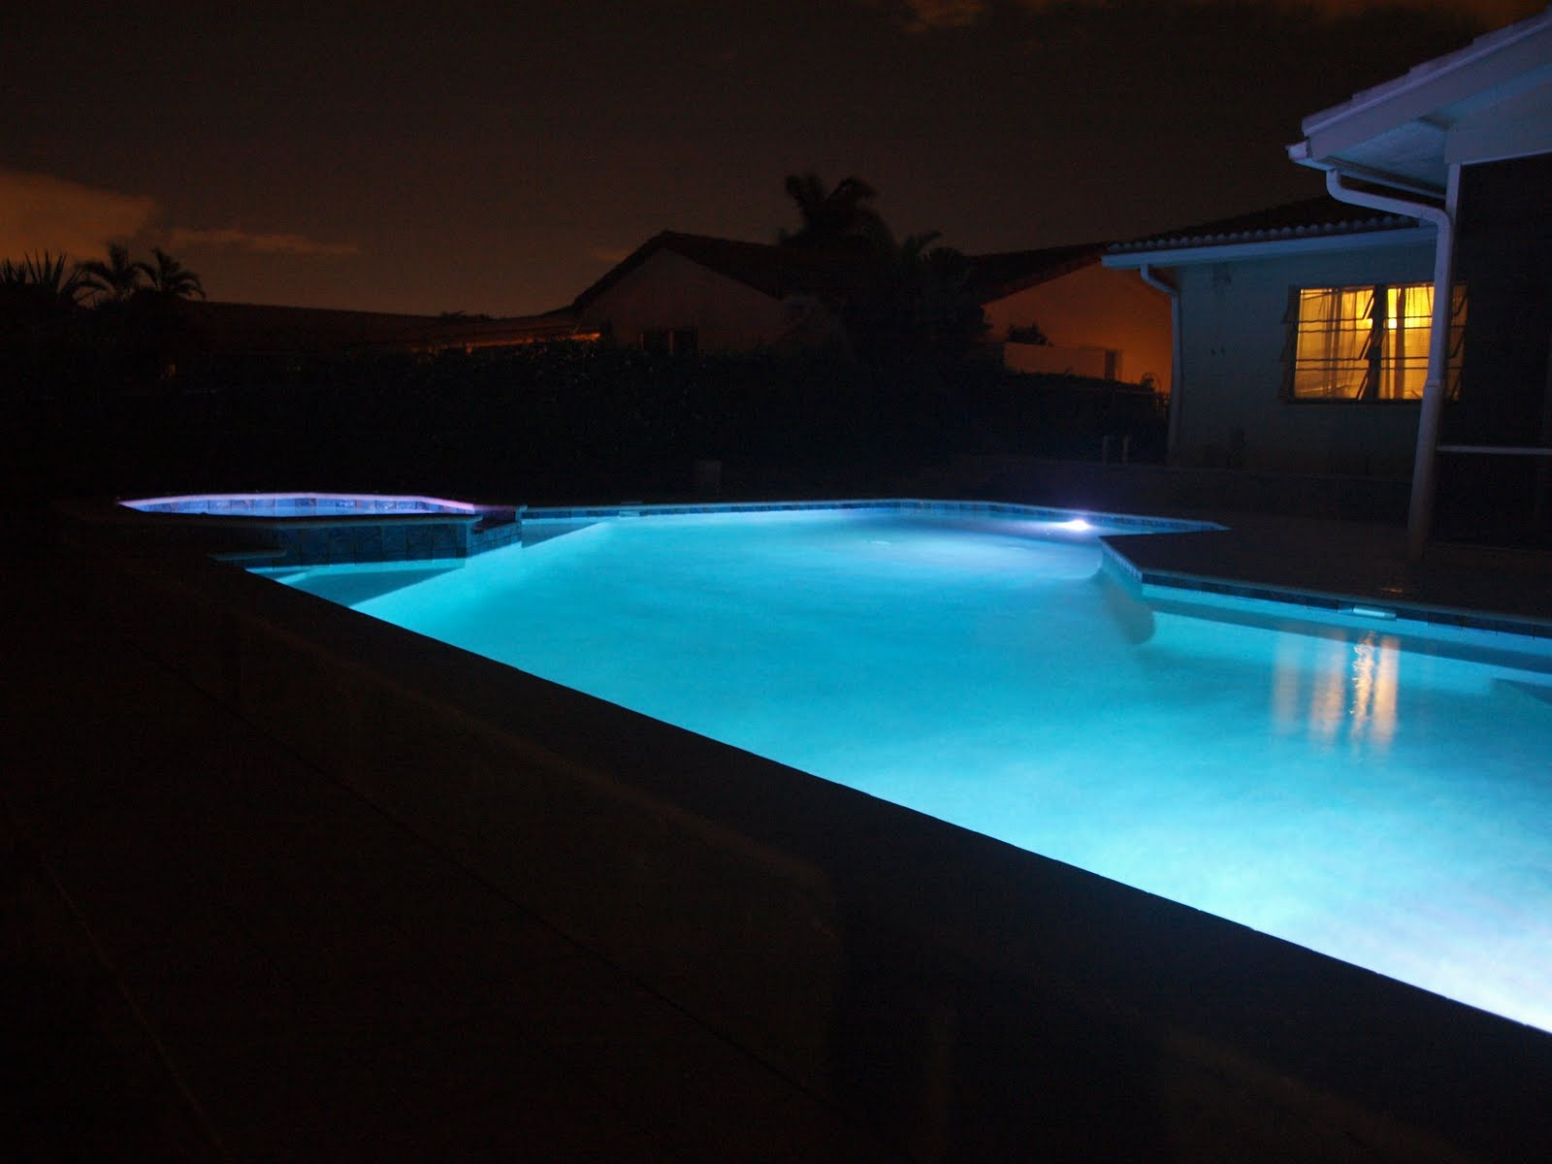 Pool lighting - Ideas and Requests - Enscape Community Forum - pool lighting ideas